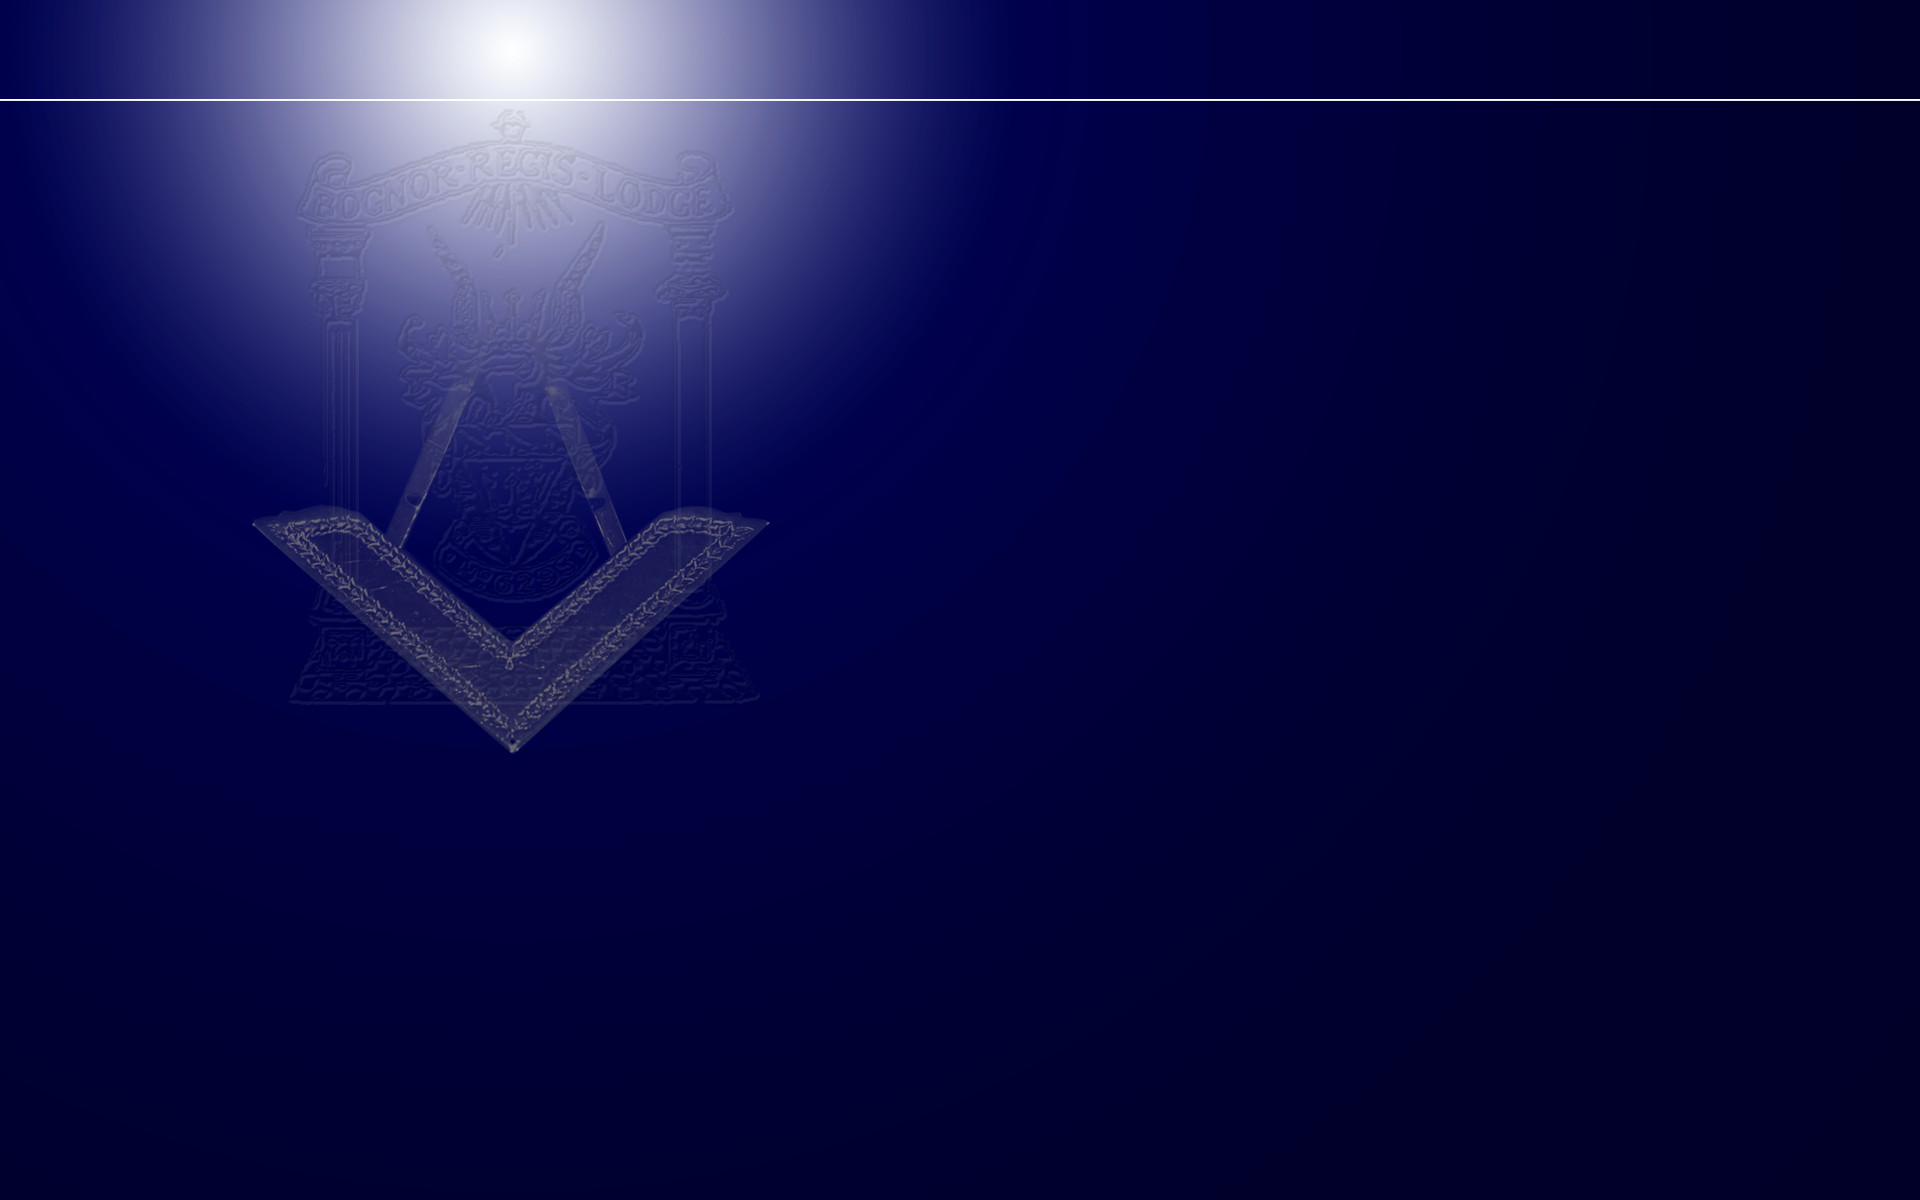 1920x1200 People have their own reasons why they enjoy Freemasonry.